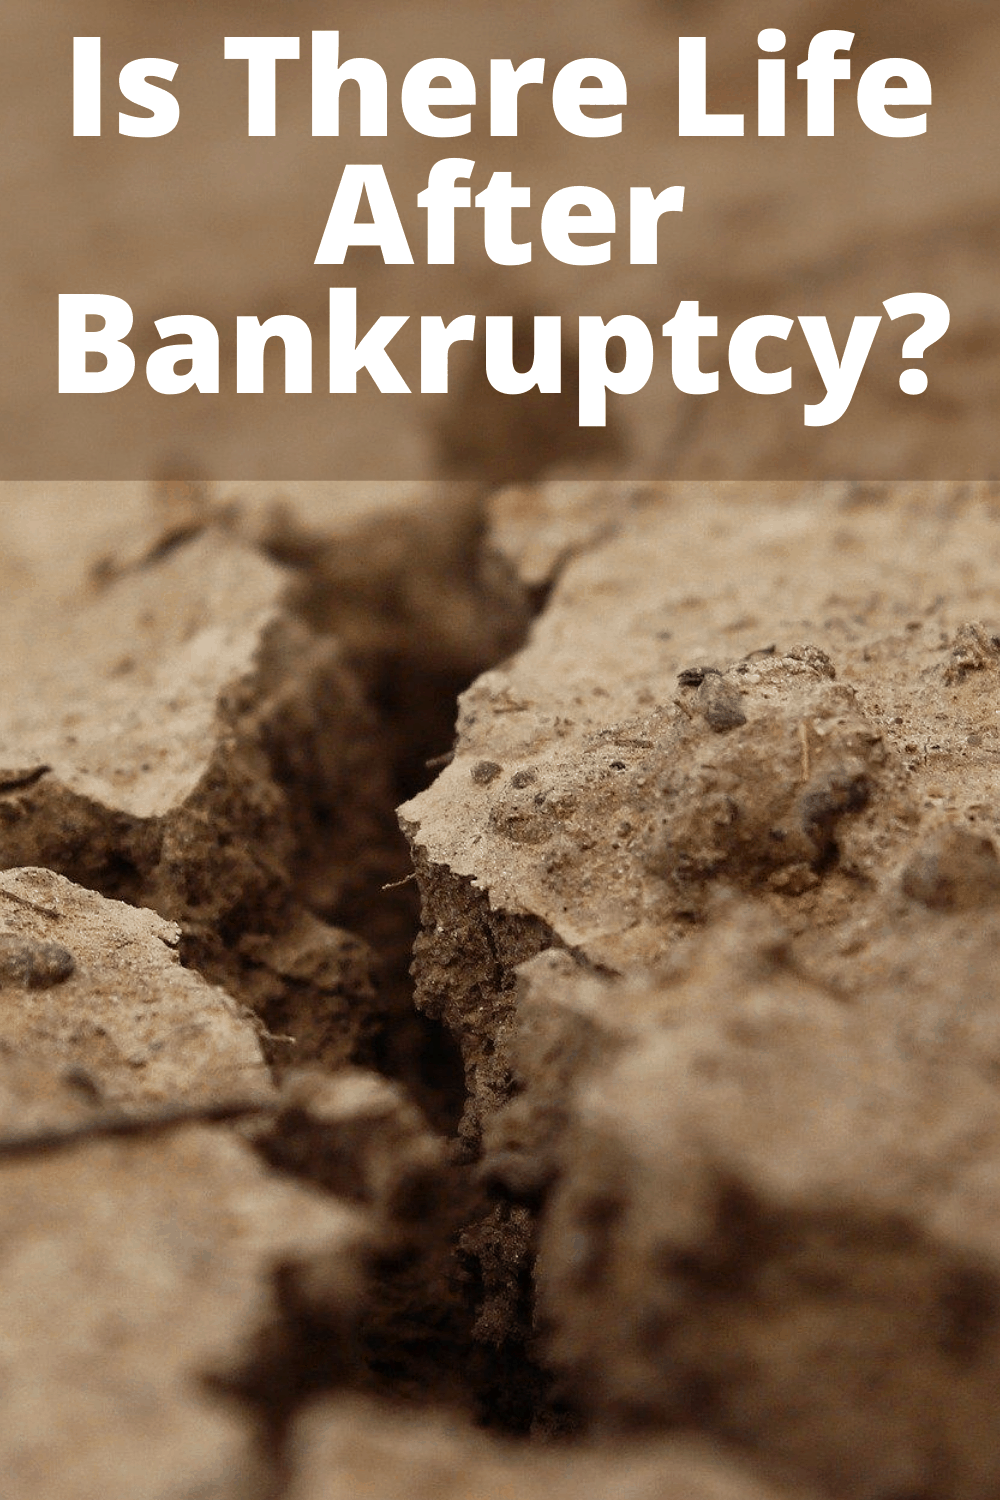 Life After Chapter 7 Bankruptcy.